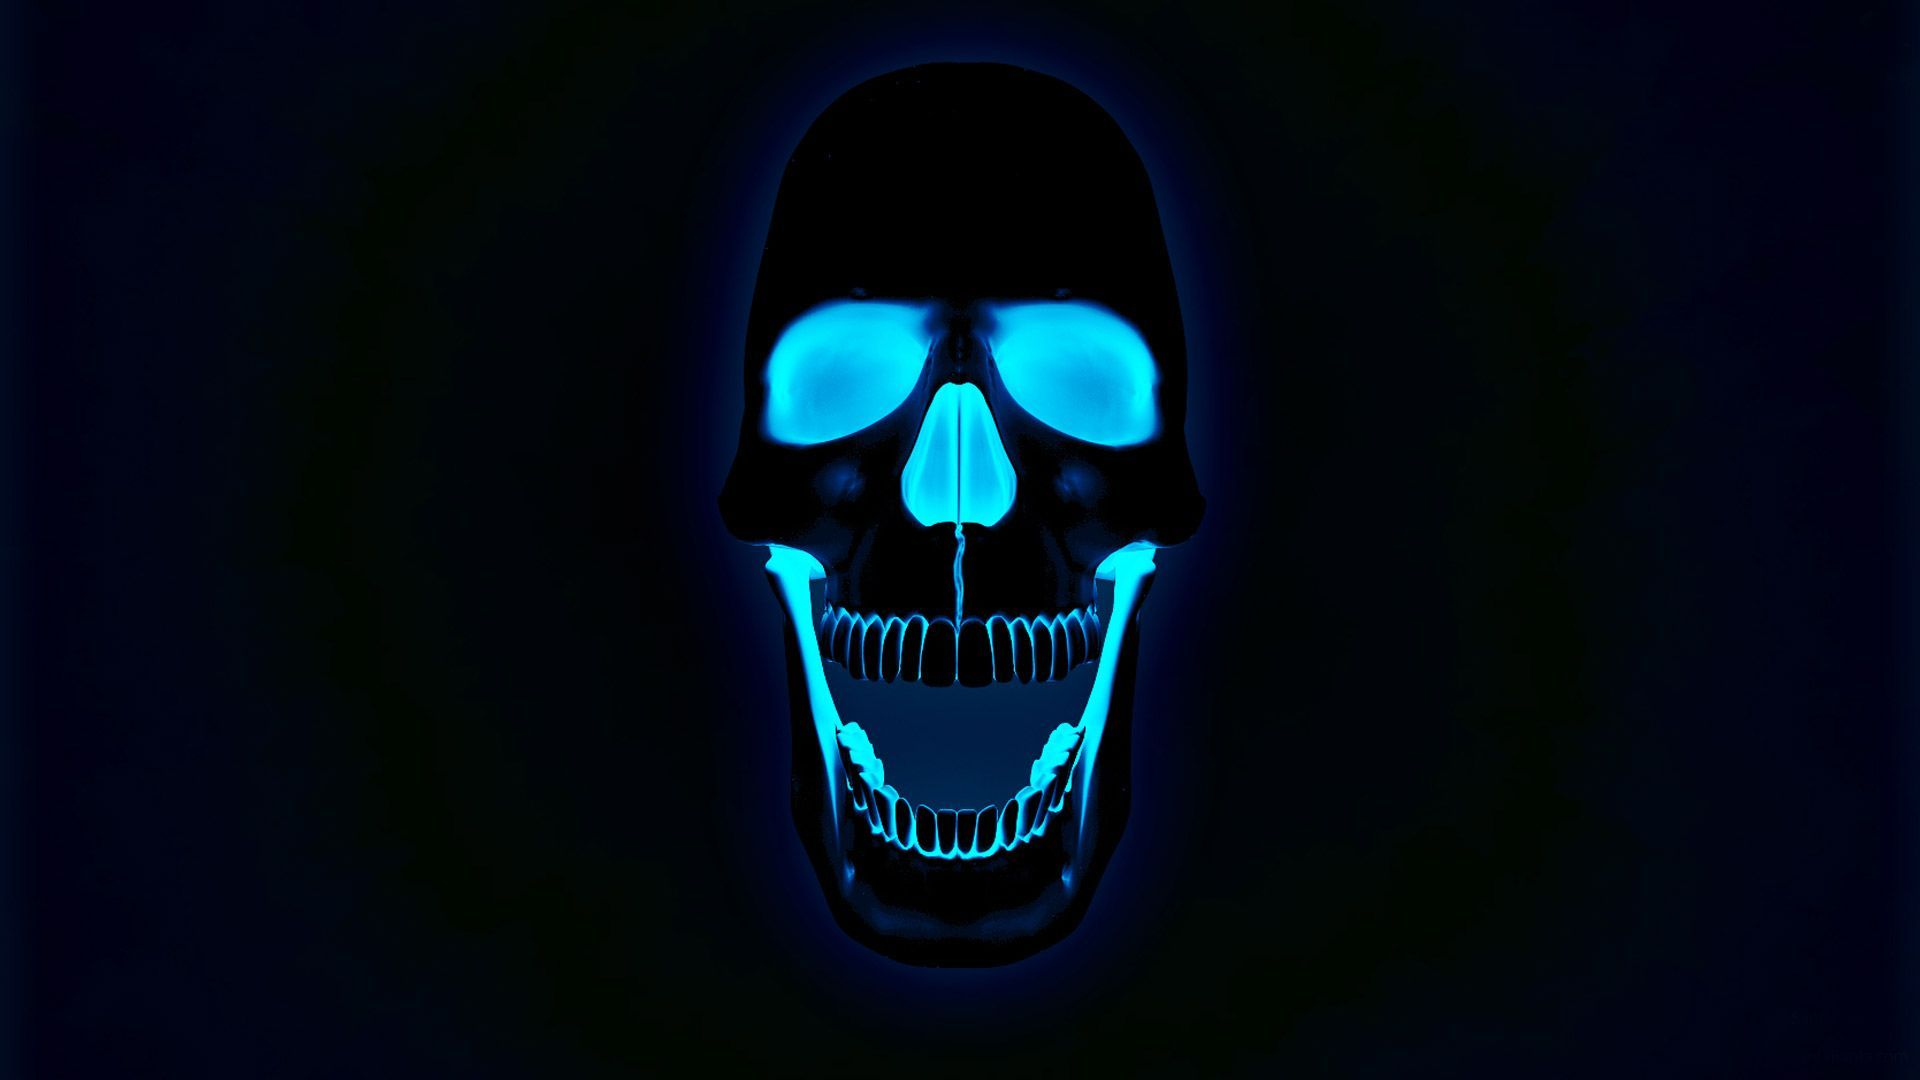 Skull Wallpapers, Awesome Skull Pictures and Wallpapers  1920x1080